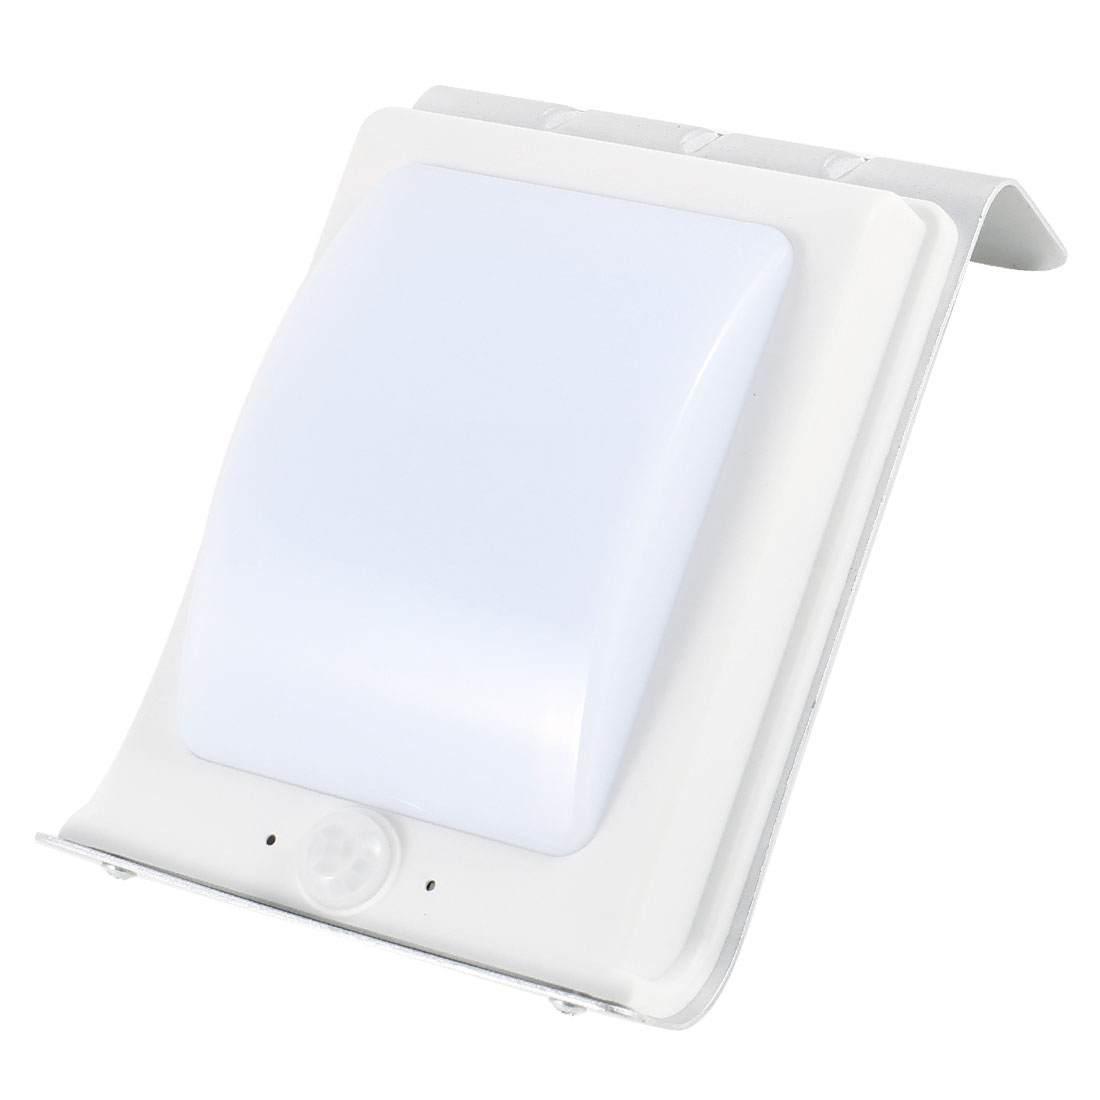 Solar Power 16 LED Motion Sensor Detector Outdoor Security Light Lamp